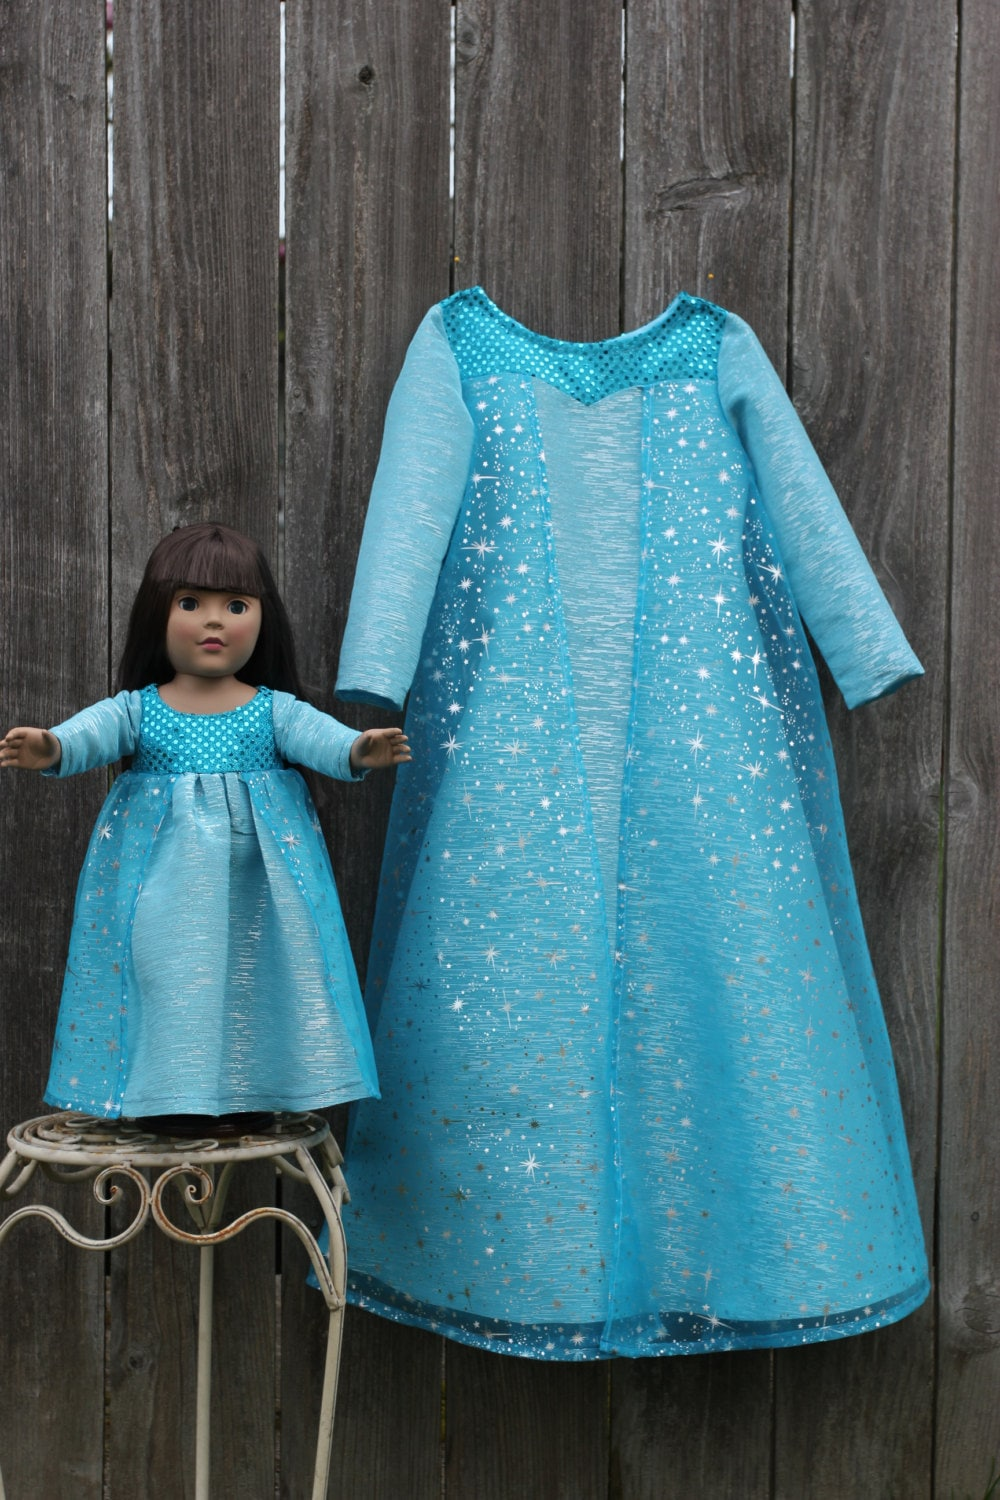 Lilli Lovebird offers handmade collections with matching dresses for girls and their dolls like e.g. American Girl.